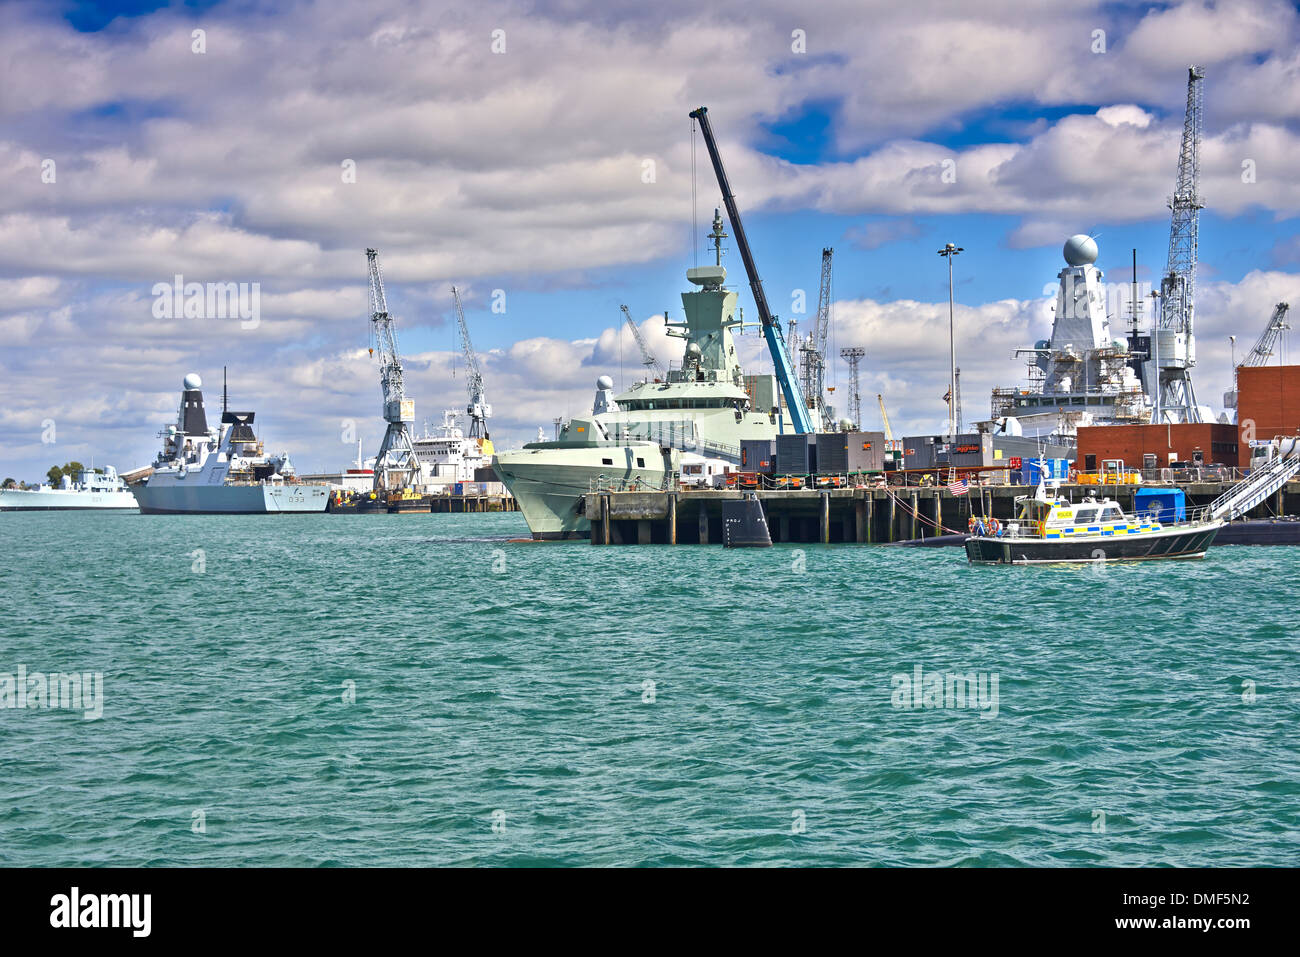 Her Majesty's Naval Base (HMNB) Portsmouth is one of three operating bases in the United Kingdom for the British Royal Navy - Stock Image